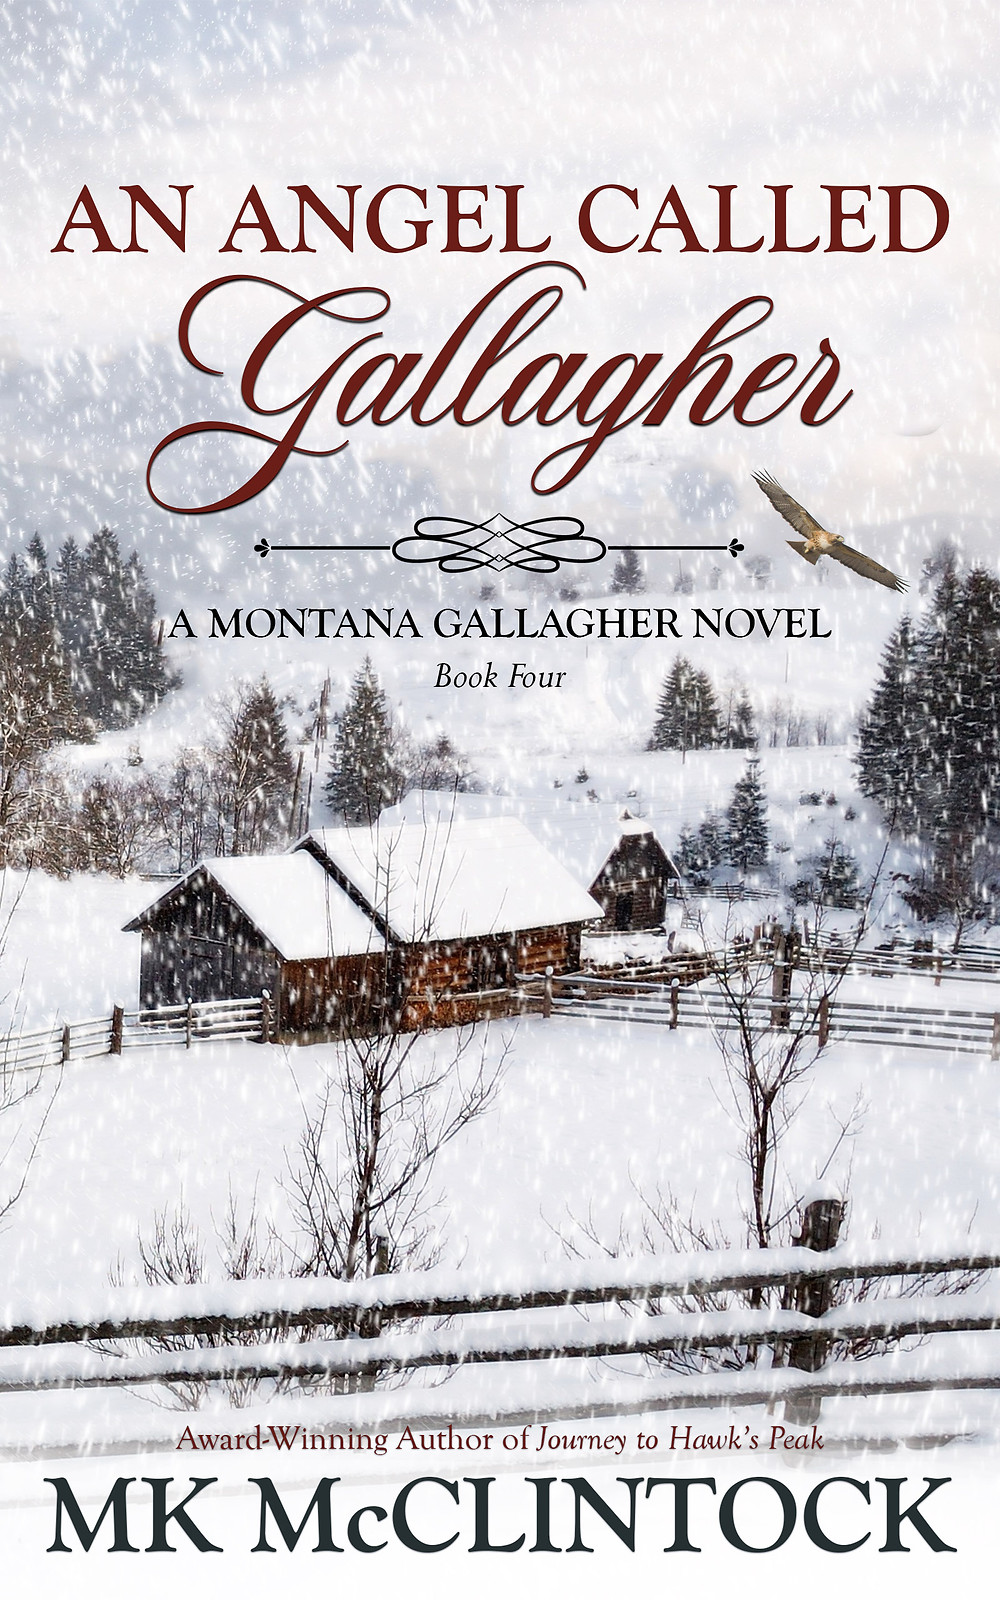 An Angel Called Gallagher by MK McClintock - historical western holiday adventure novel